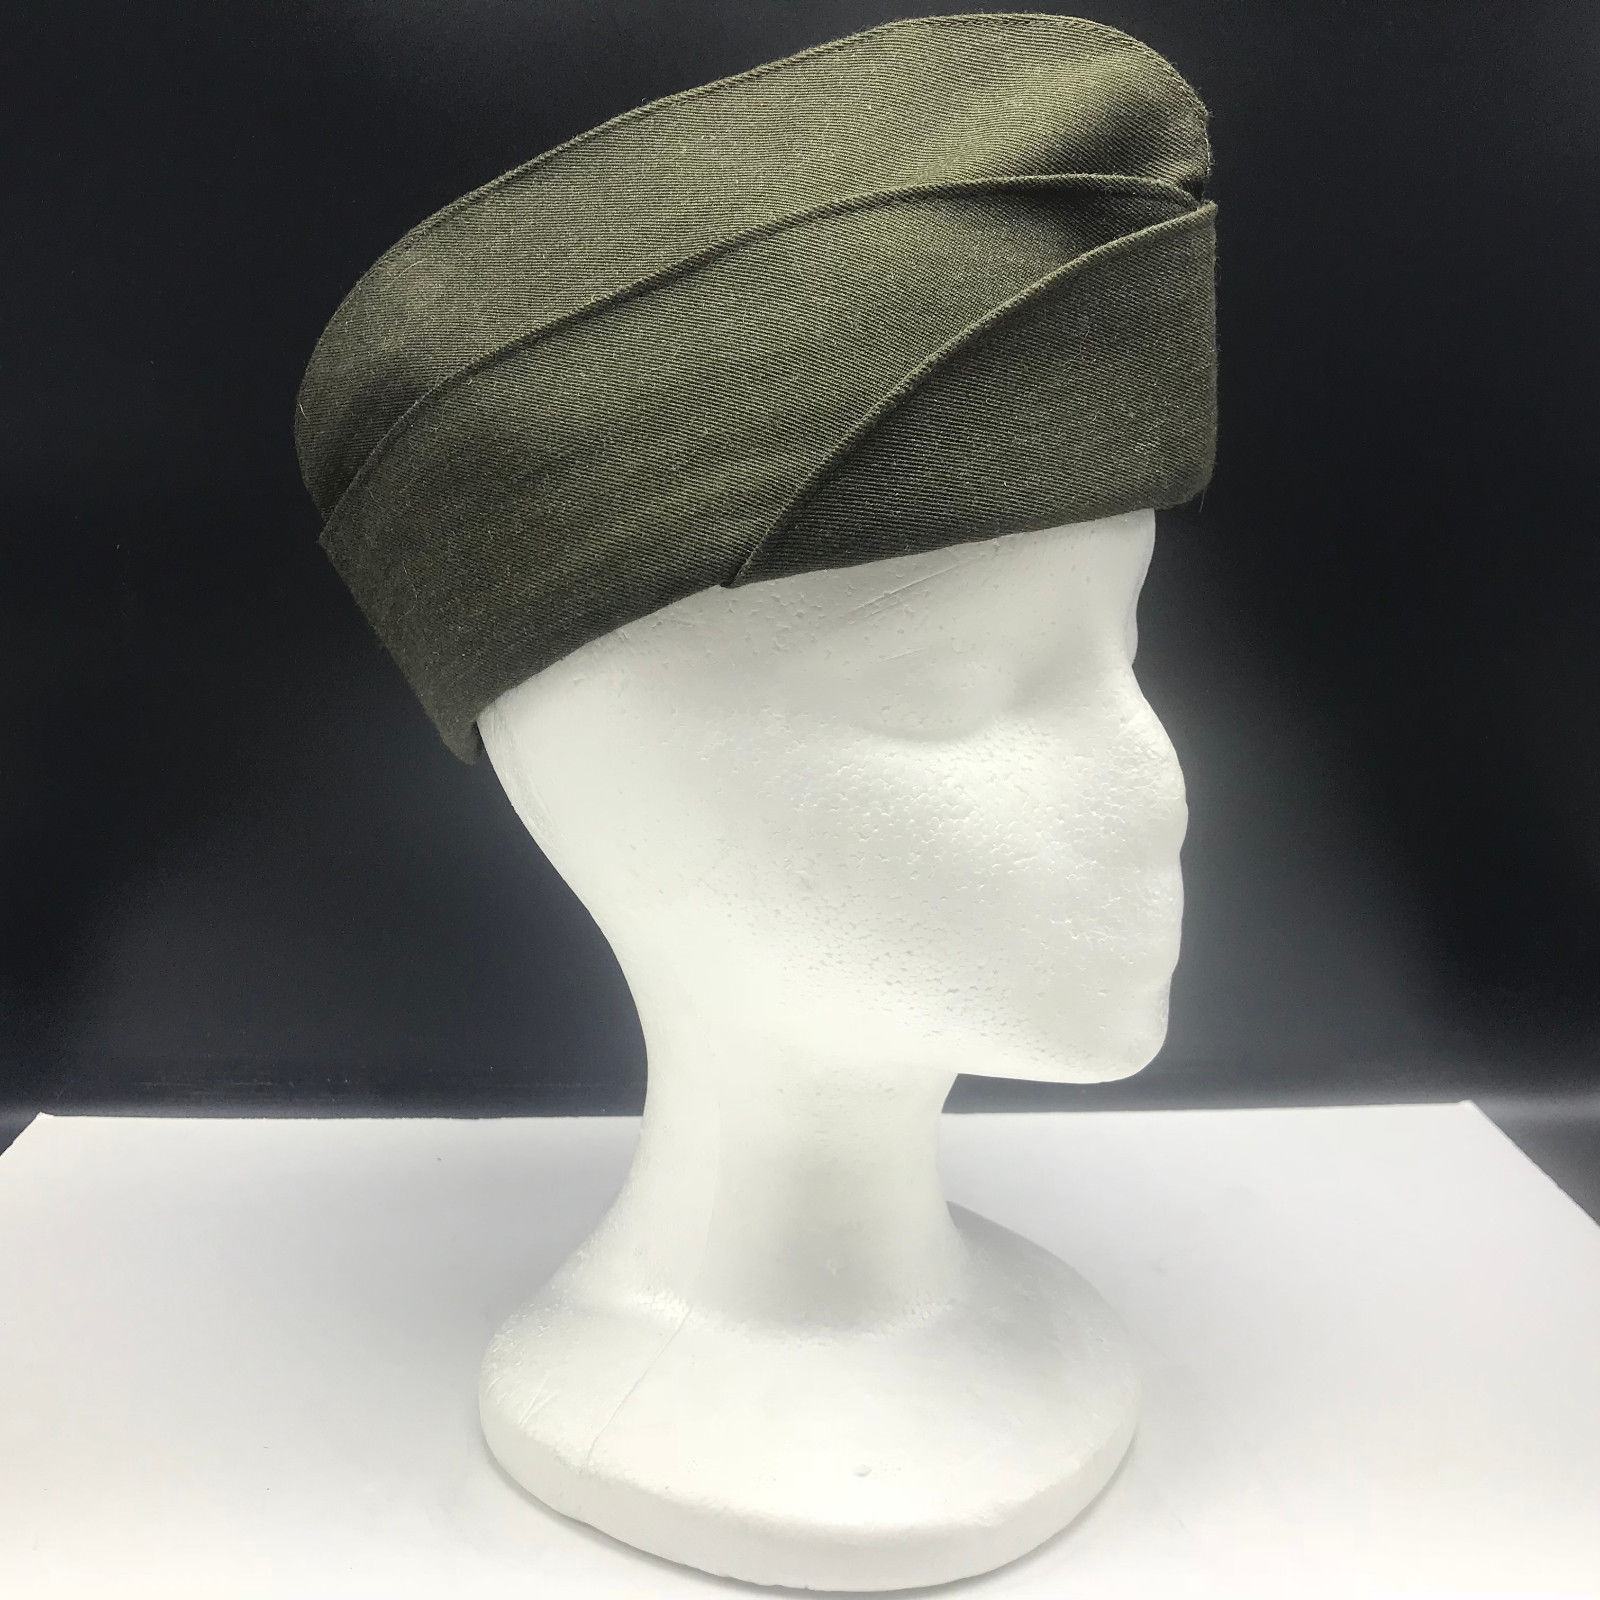 ebd3783a0d1d5 Valor Collection Marine Corps Hat Cap Size 6 and 50 similar items